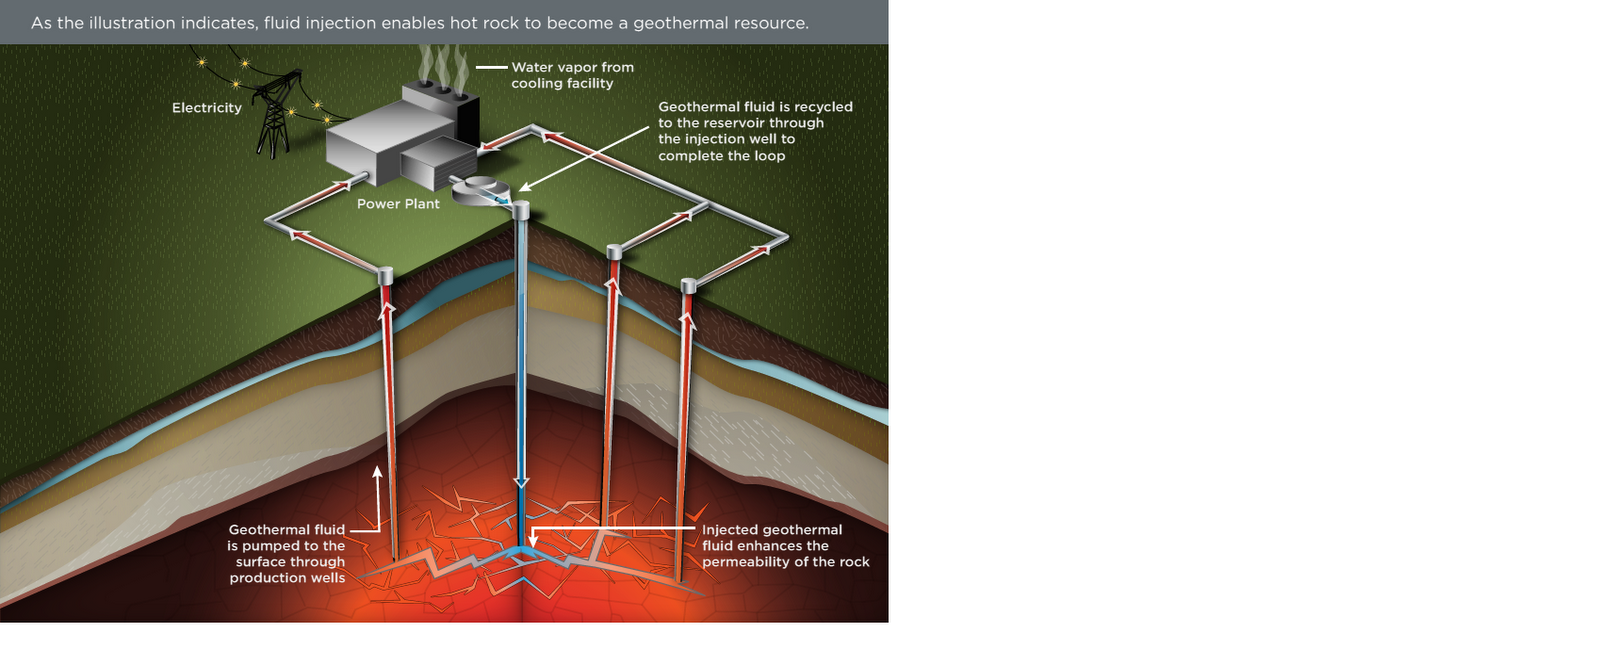 Geothermal Energy Diagram Explanation The economics of geothermal